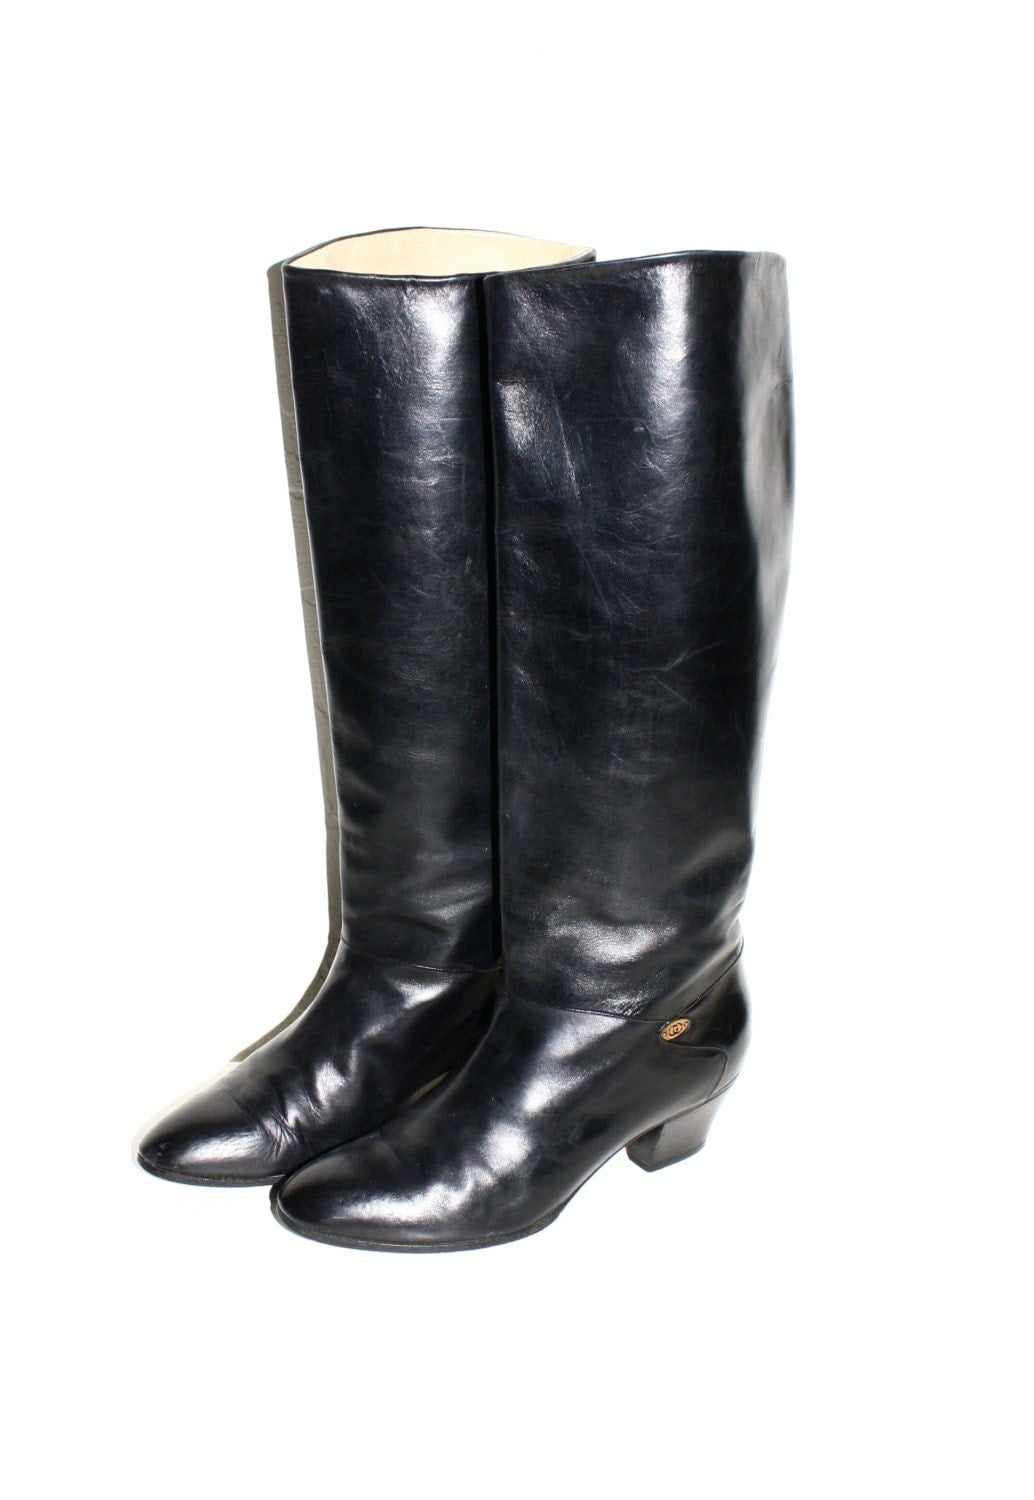 gucci vintage black leather boots low heel knee high boots 38